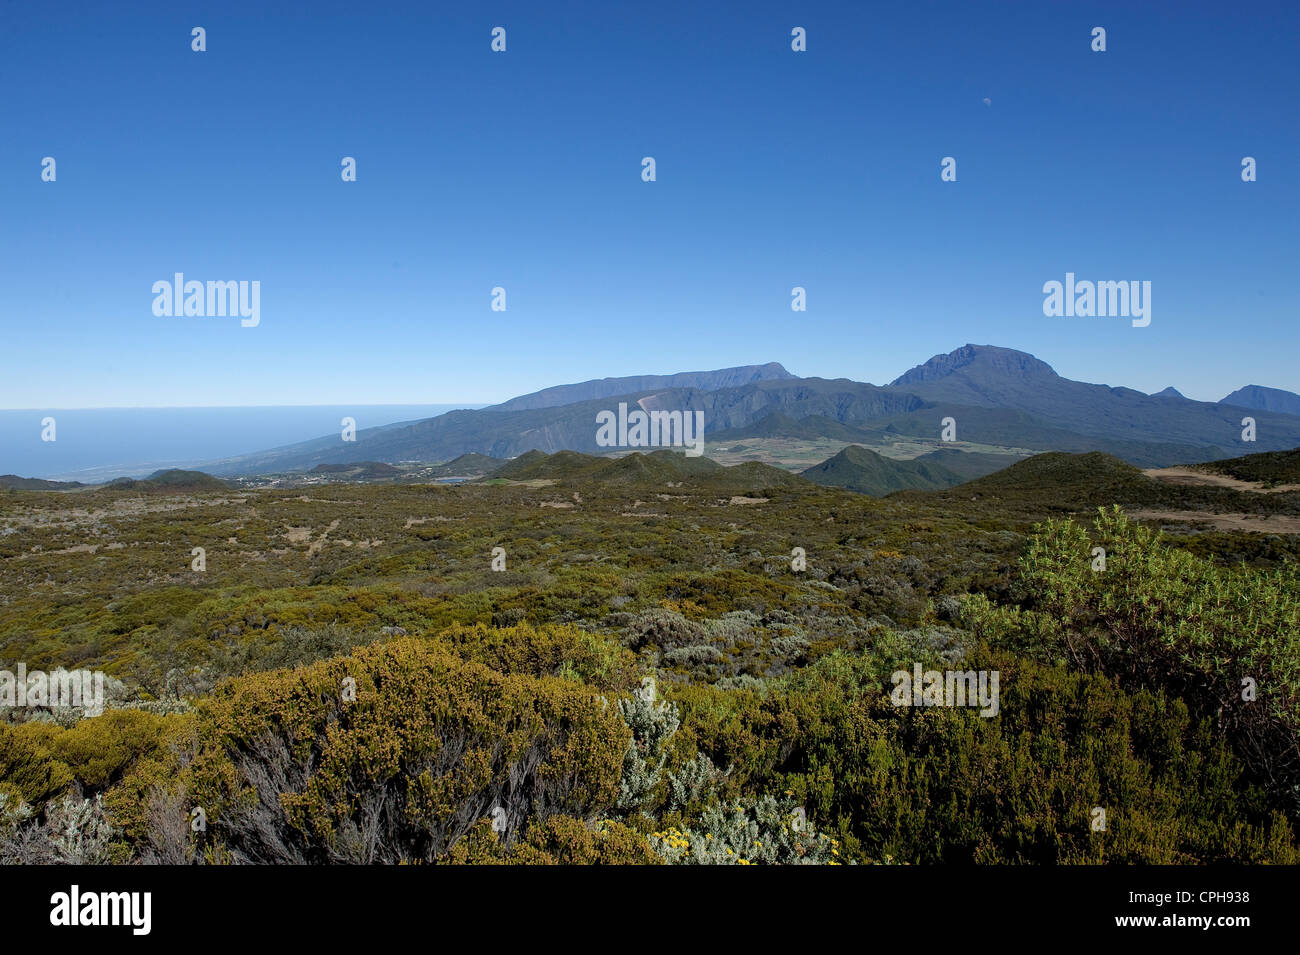 Scenery, volcanically, hollow, Africa, Indian ocean, La Reunion, - Stock Image